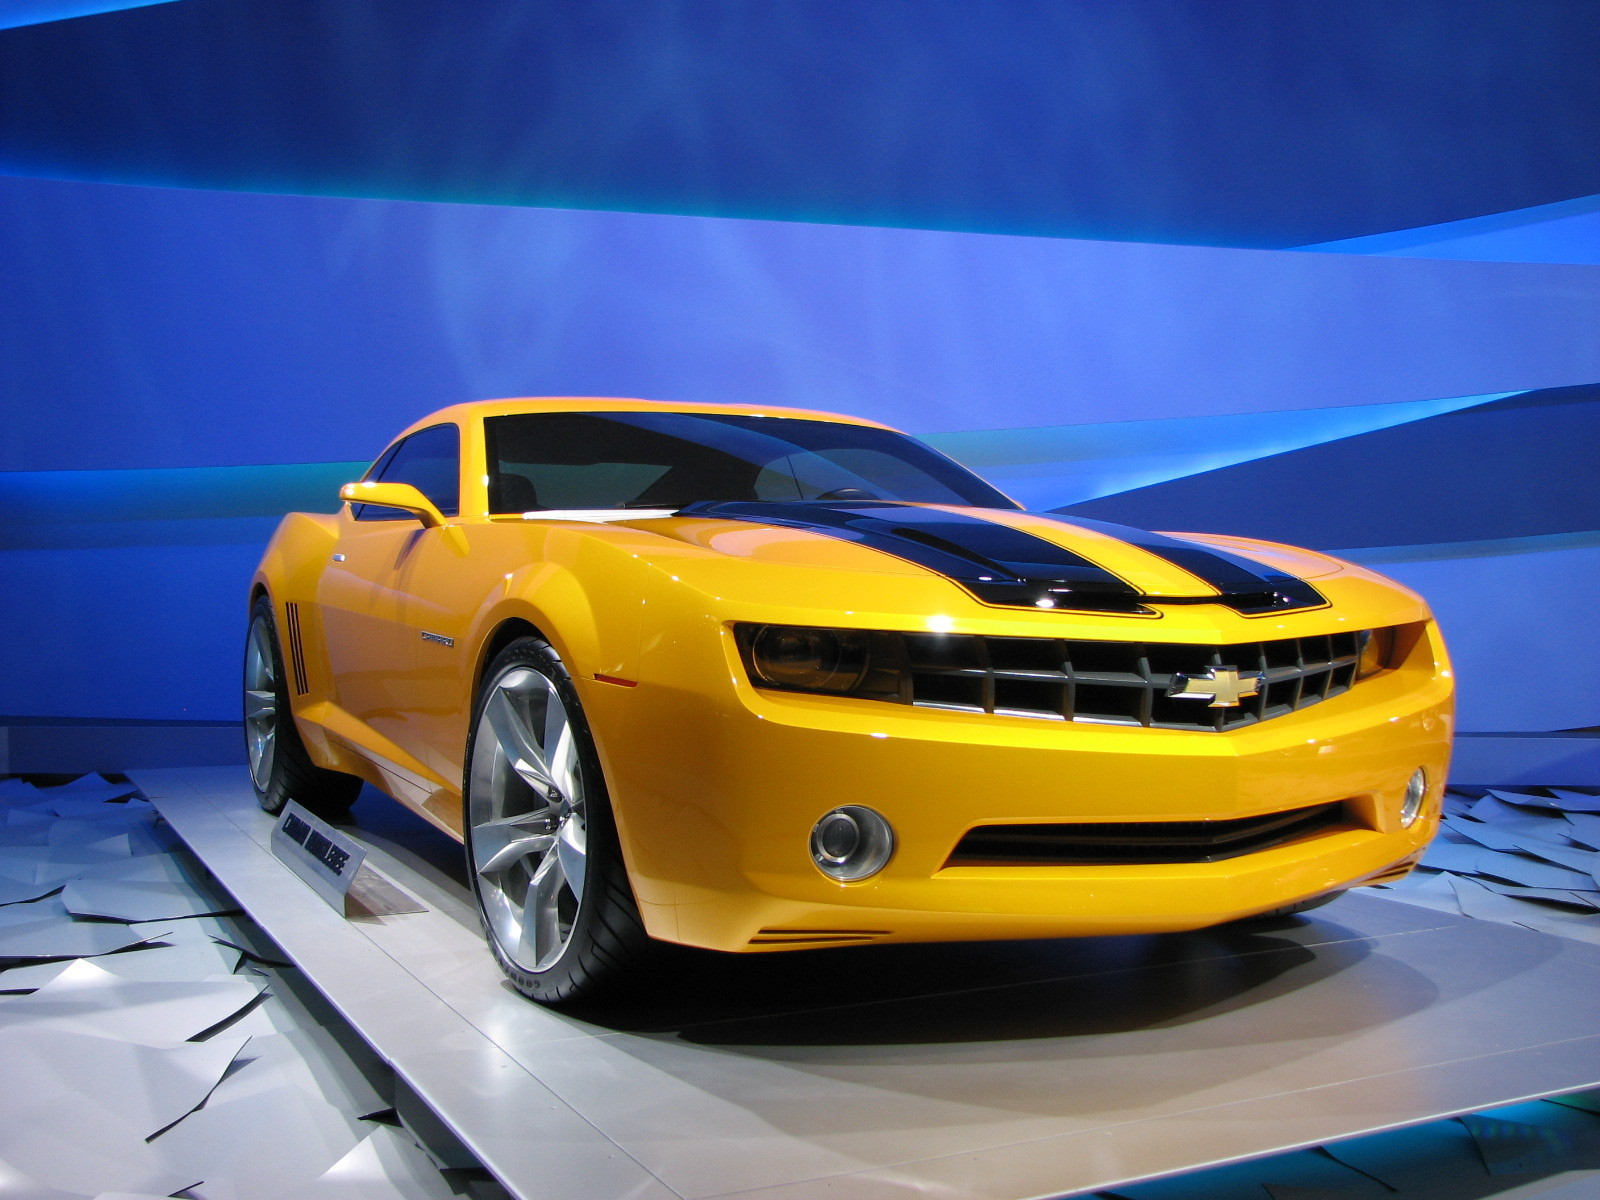 Transformers Images The Real Bumblebee Car Hd Wallpaper